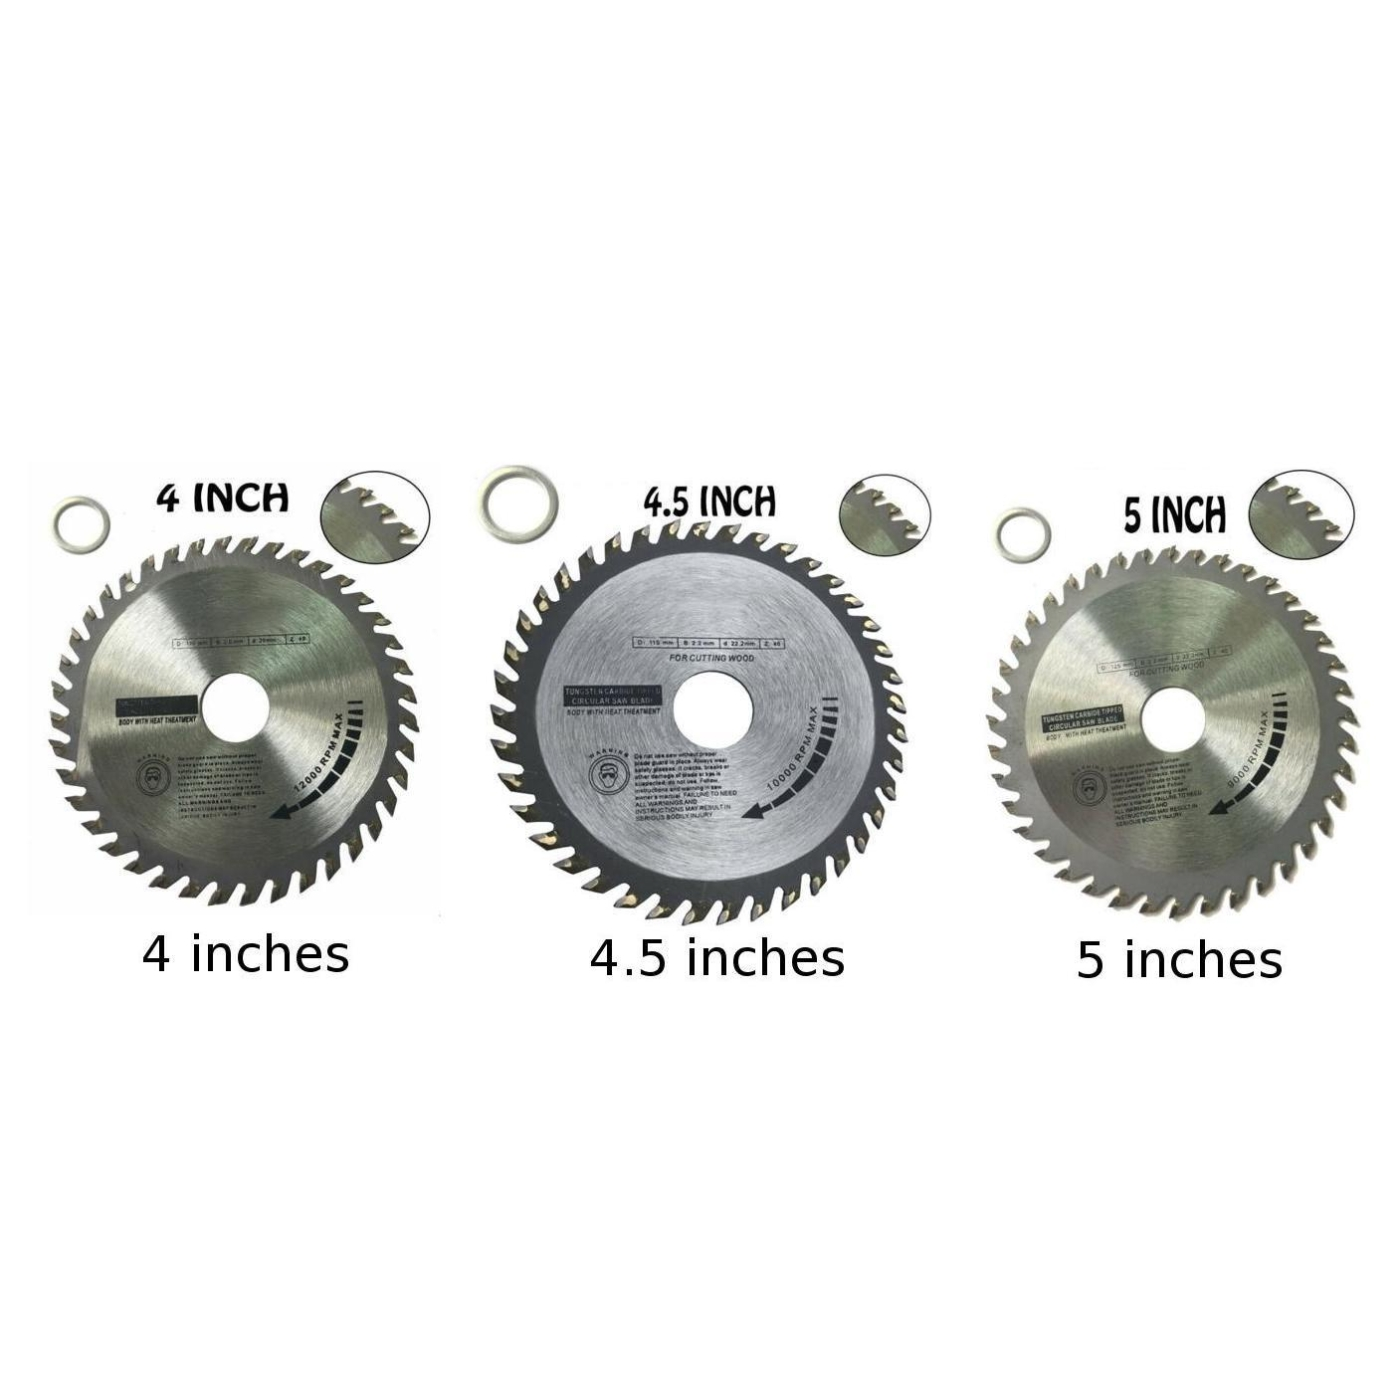 4 /4.5 /5 Inch Saw Blade Multitool Grinder Wood Cutting Disc Graff Cut Wood With Nails Saw Disc Sharp Power Tool Accessories